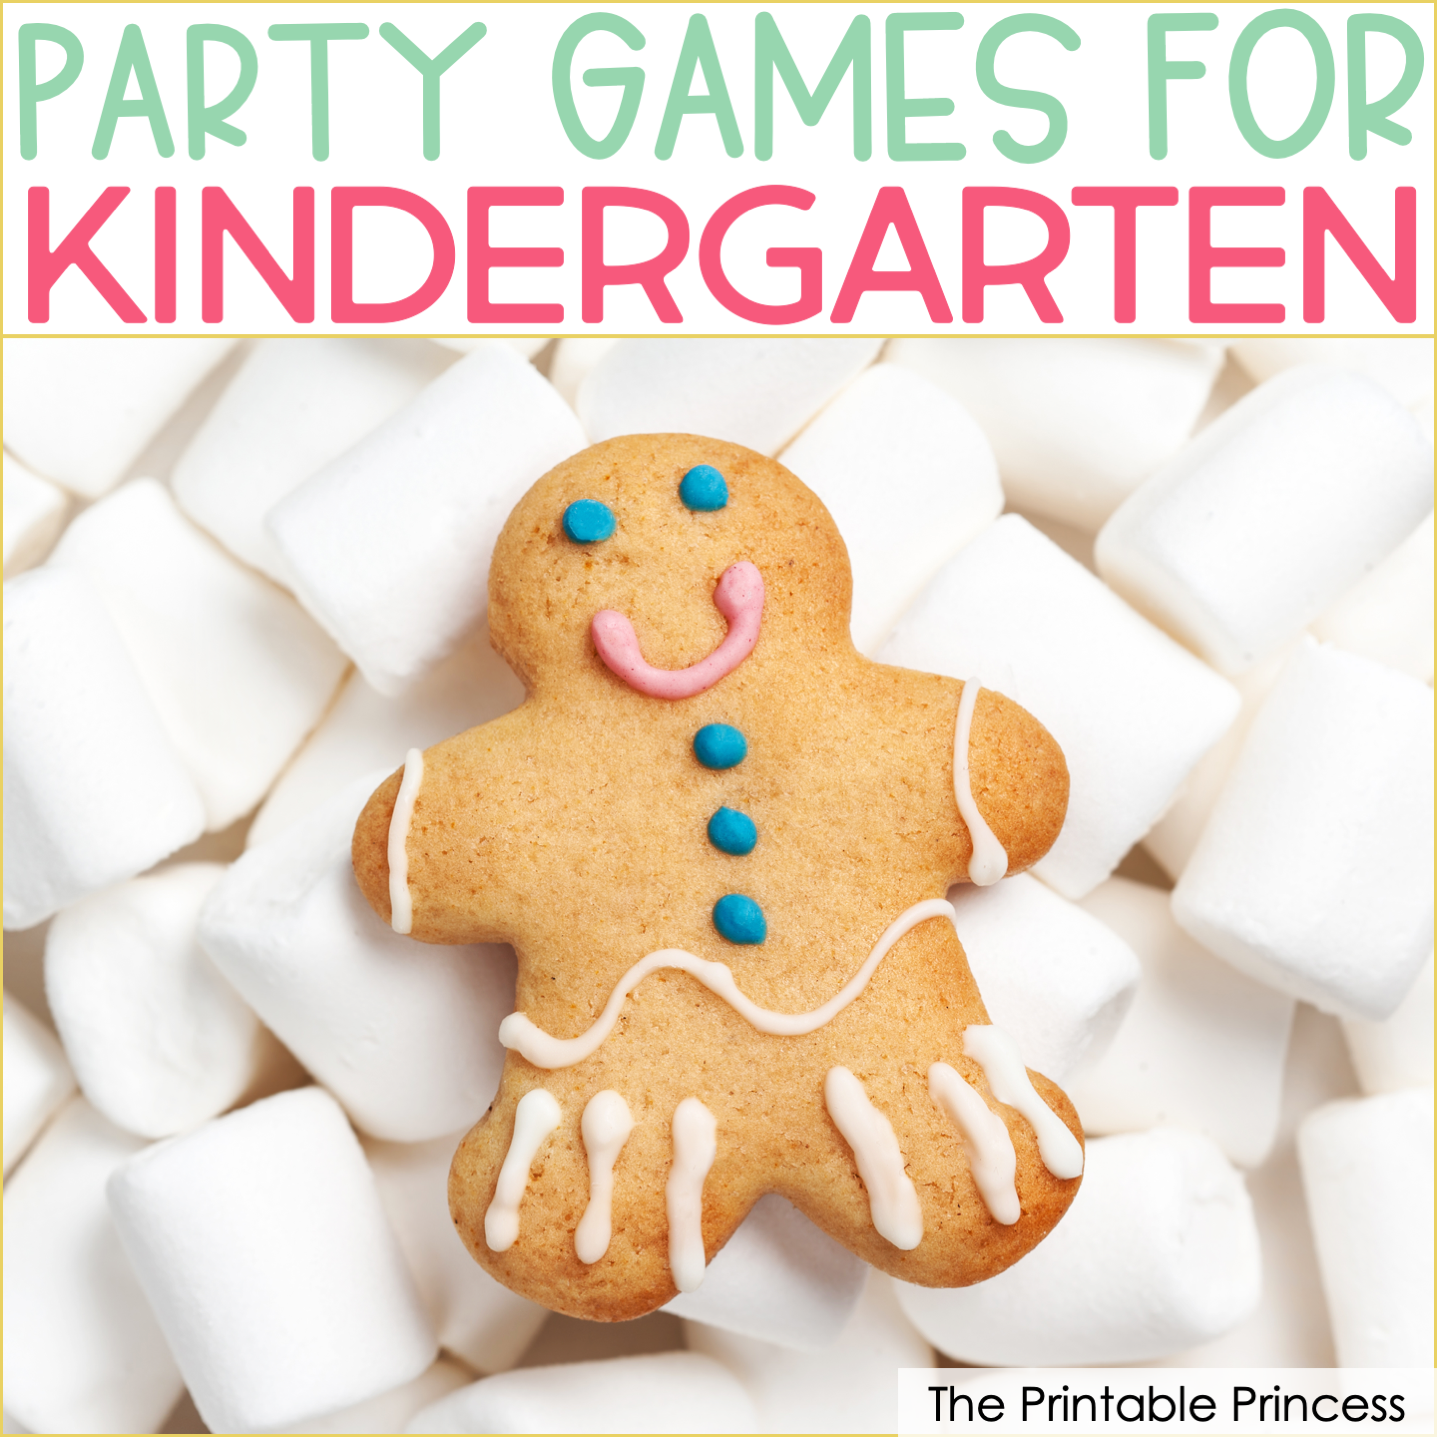 12 Best Holiday Party Games for Kindergarten